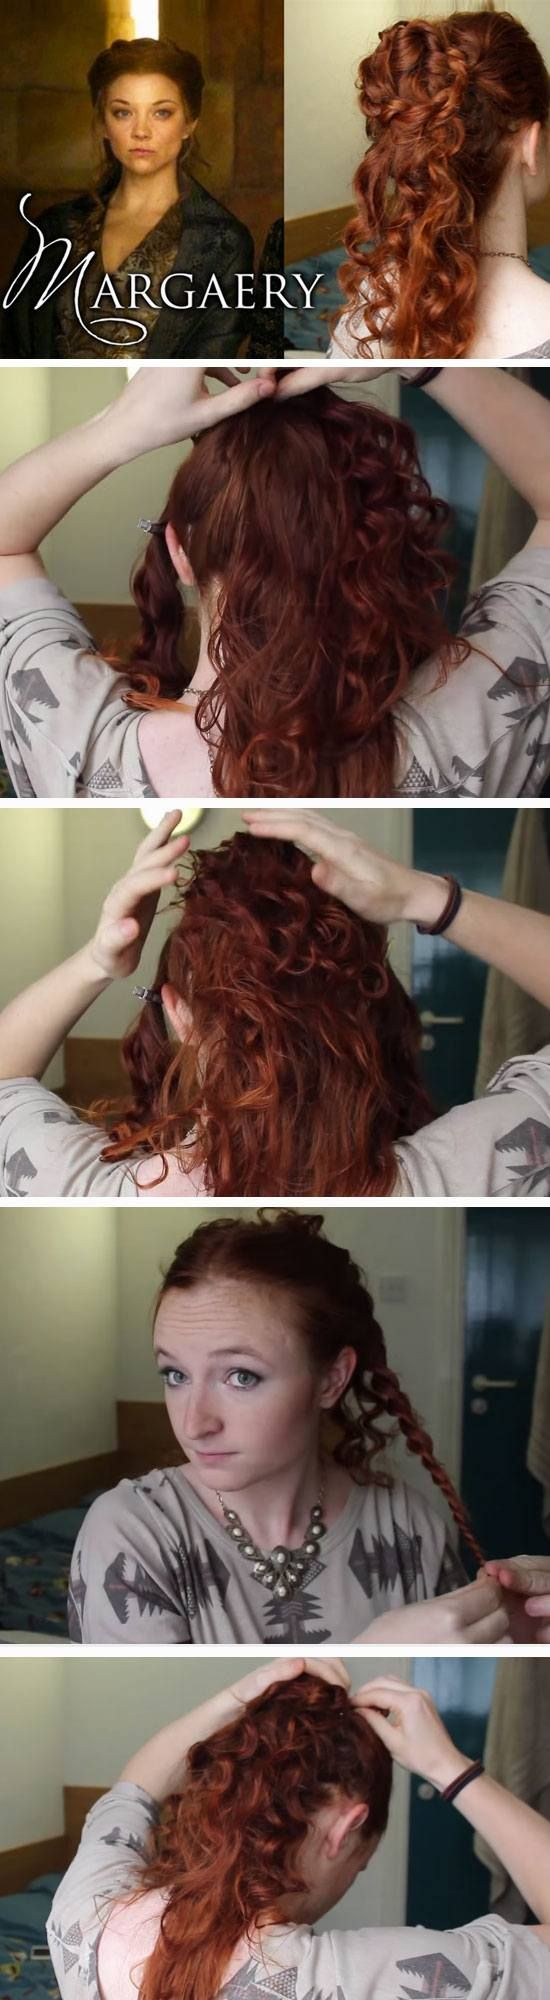 Margaery Tyrell  | 18 DIY Game of Thrones Inspired Hairstyles that will turn you into a medieval princess!